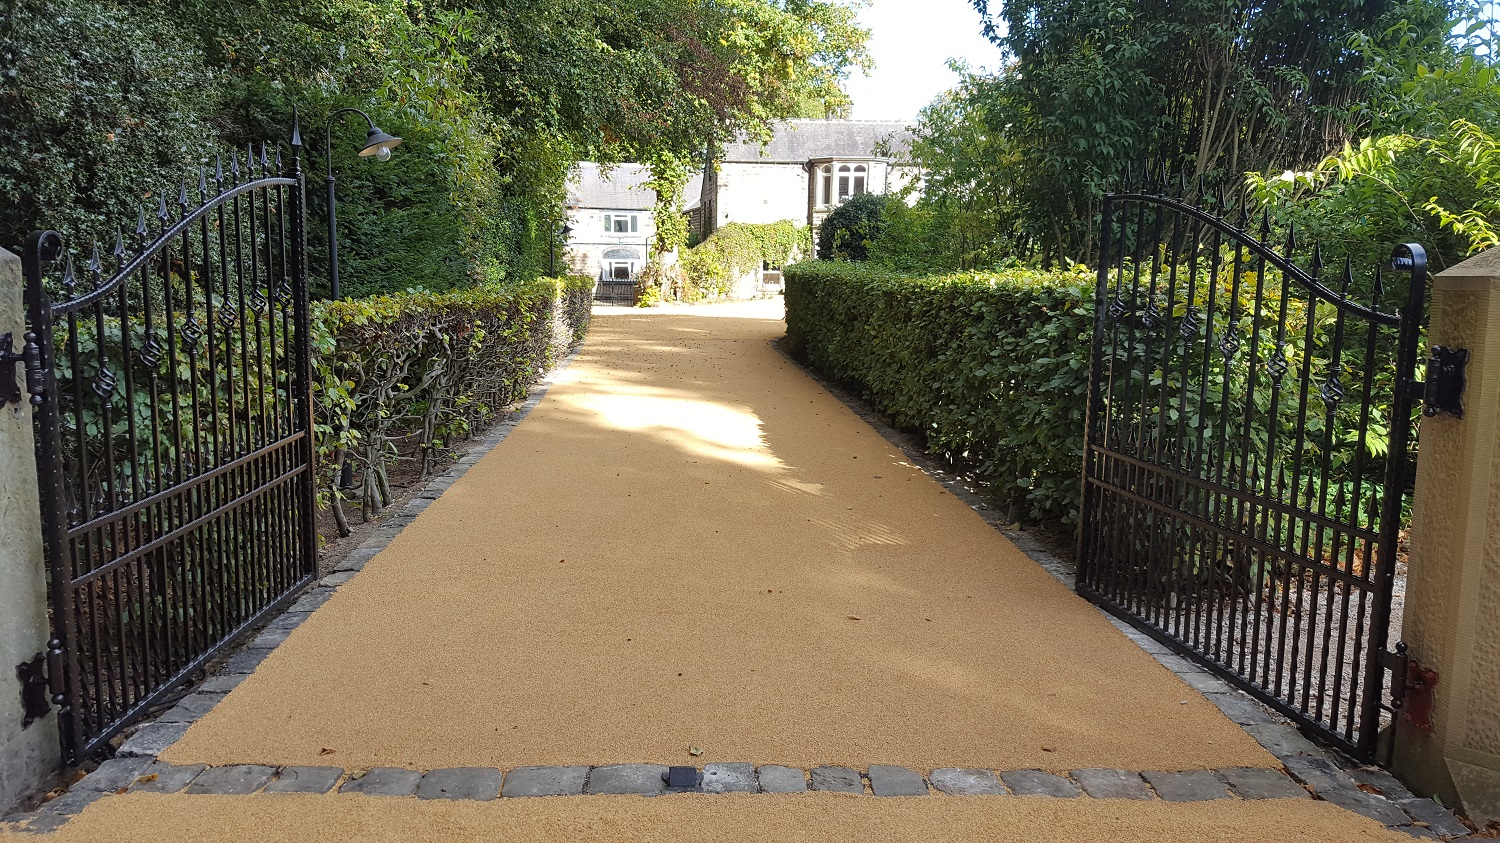 B12 - Resin Bonded Driveway Surfacing at Walton in Chesterfield with Stone Cobble Border